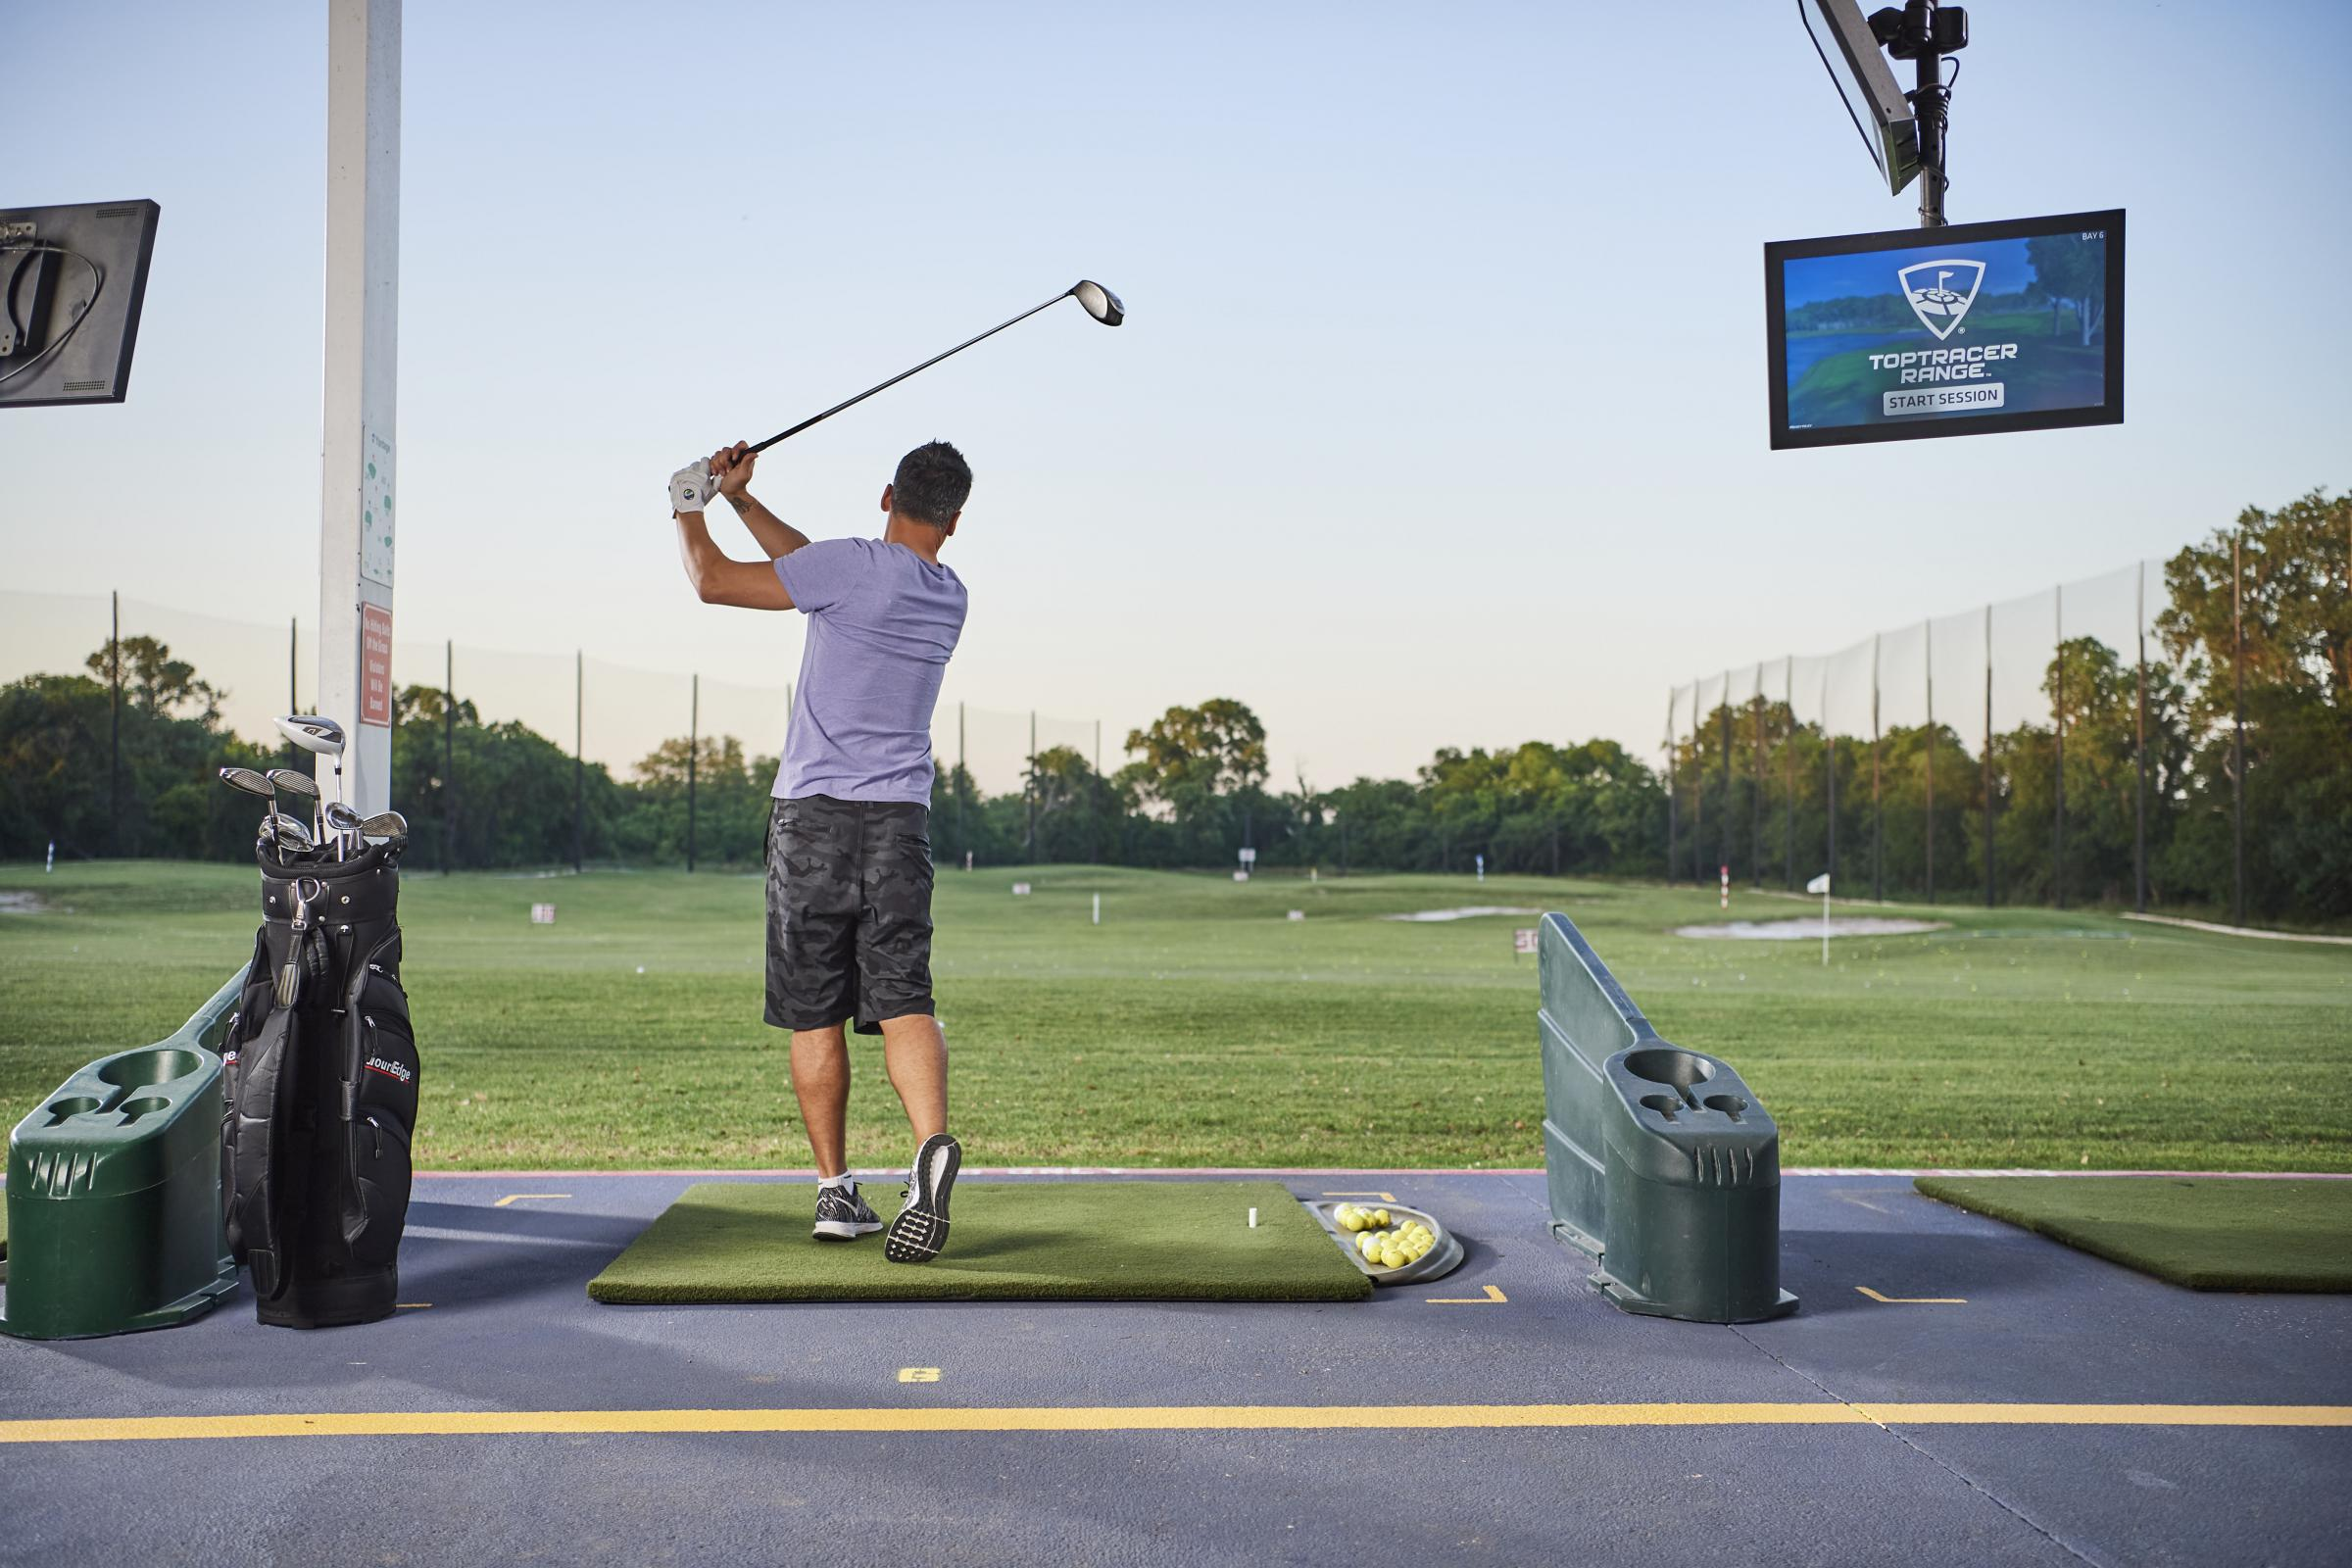 The new Toptracer Range software allows keen golfers to play against family and friends on a virtual course